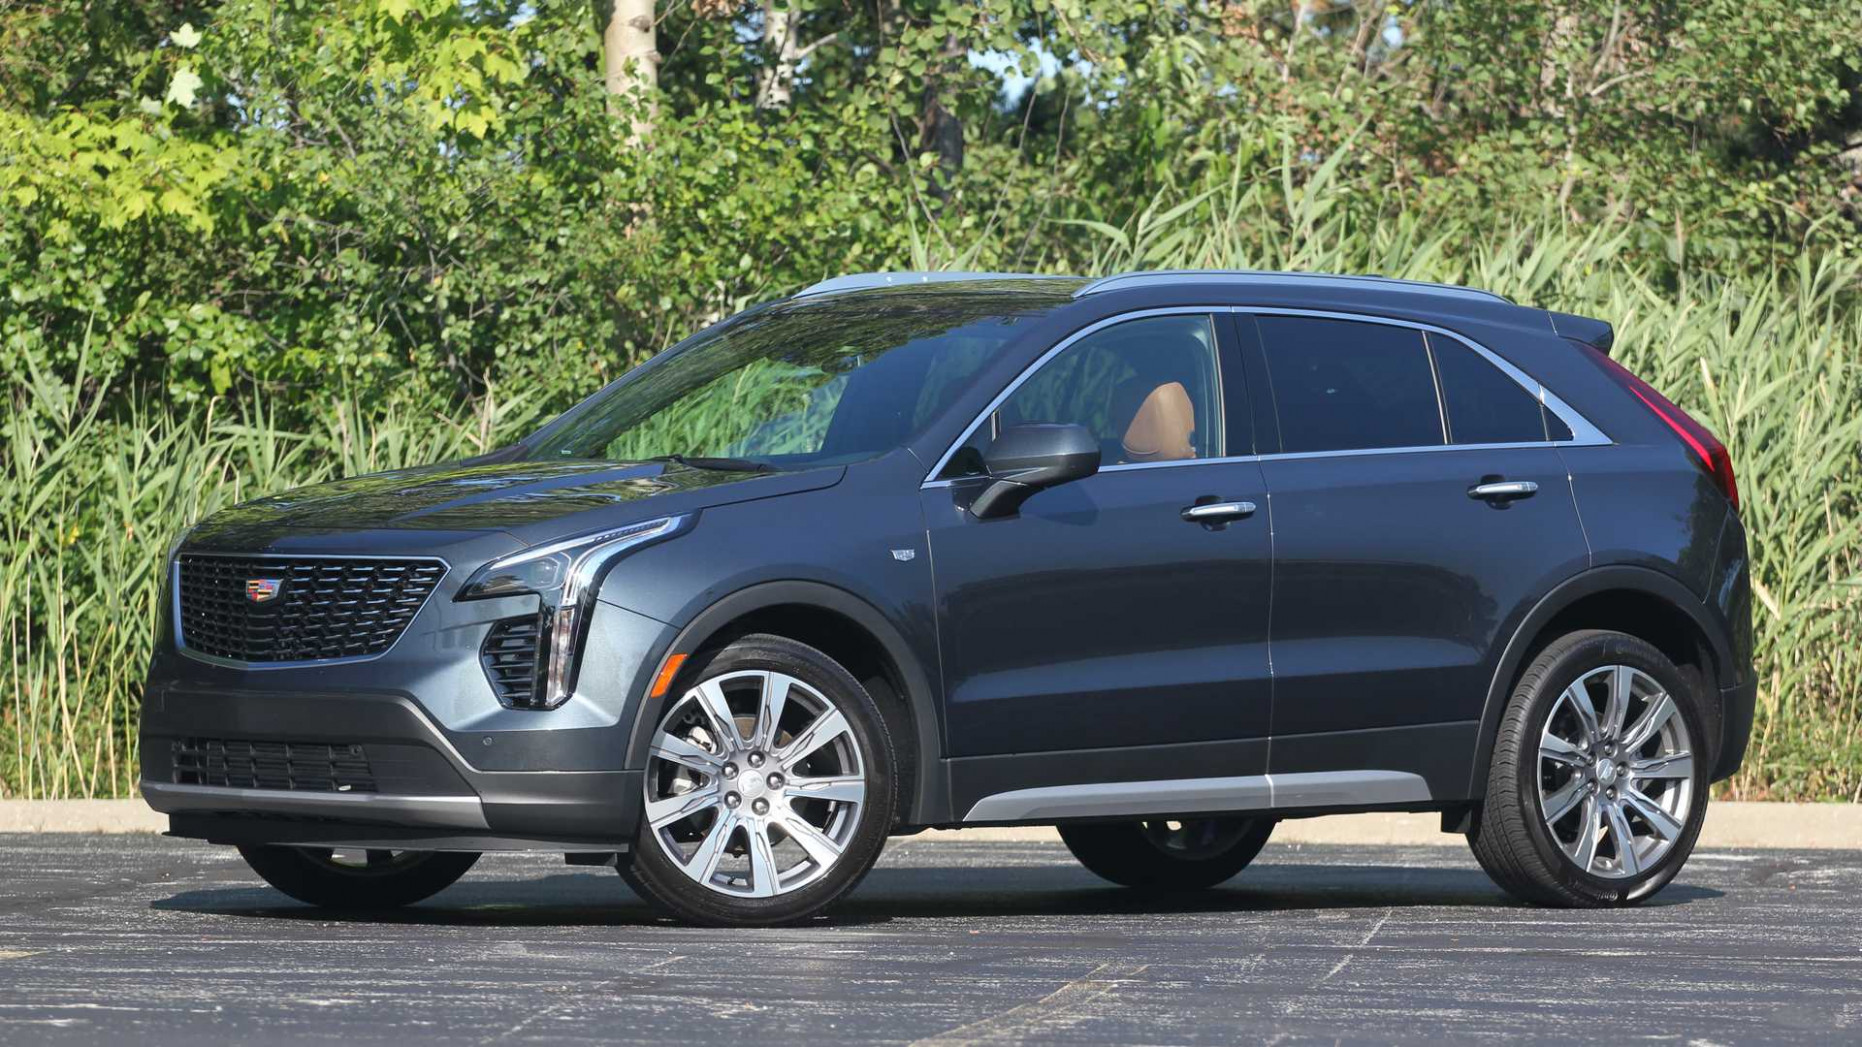 Cadillac Could, But Won't, Cram V11 Engine Into XT11: Report